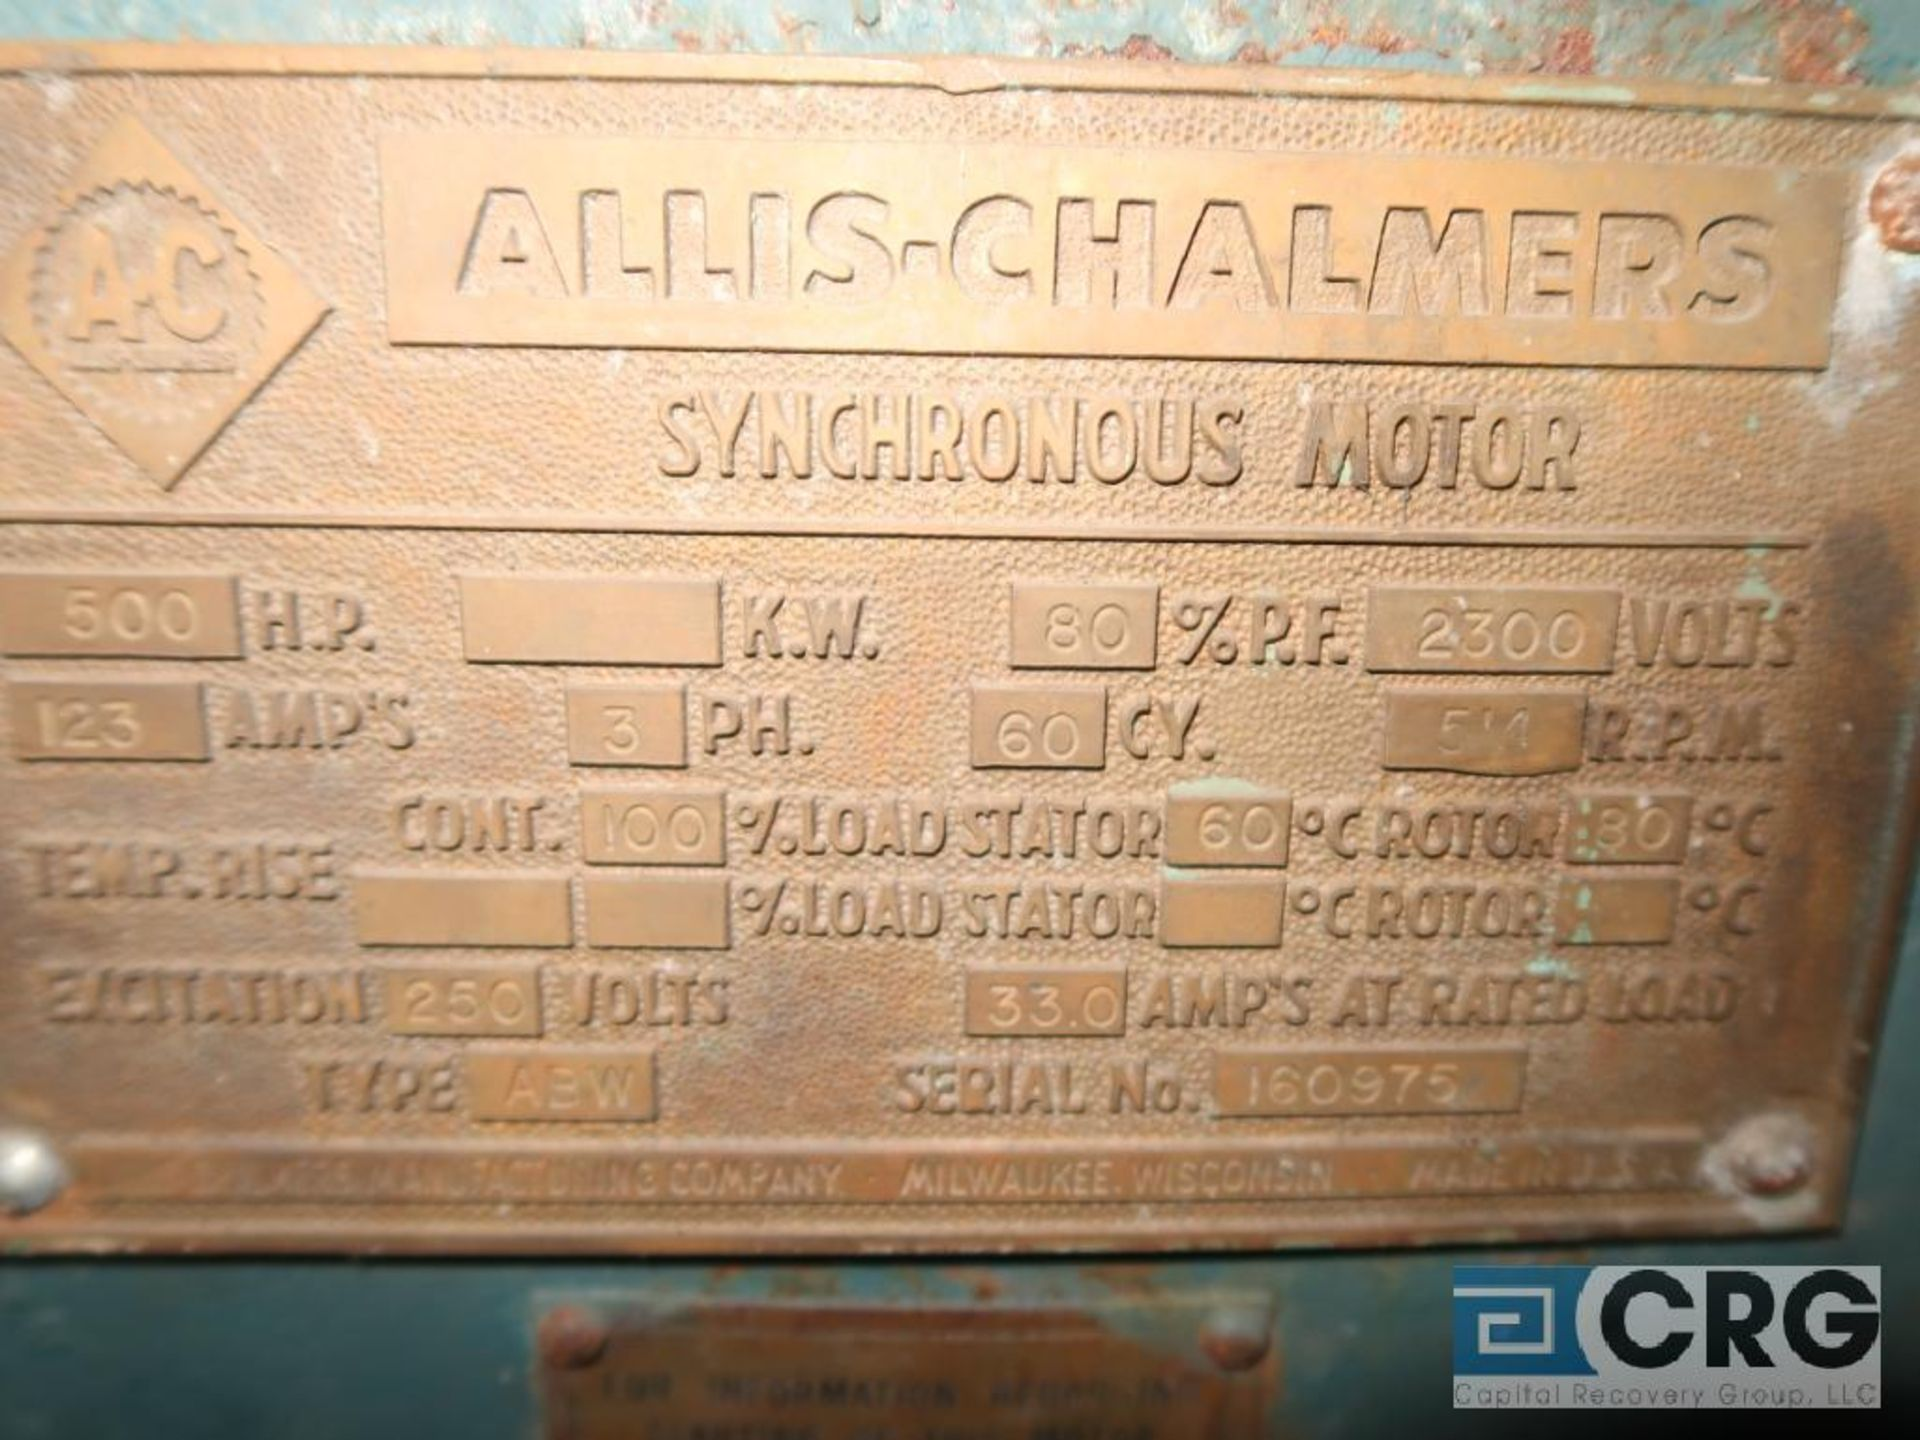 Allis Chalmers 500 HP motor, 2,300 volt, 3 ph., 514 RPM, s/n 160975 (Off Site Warehouse) - Image 2 of 2